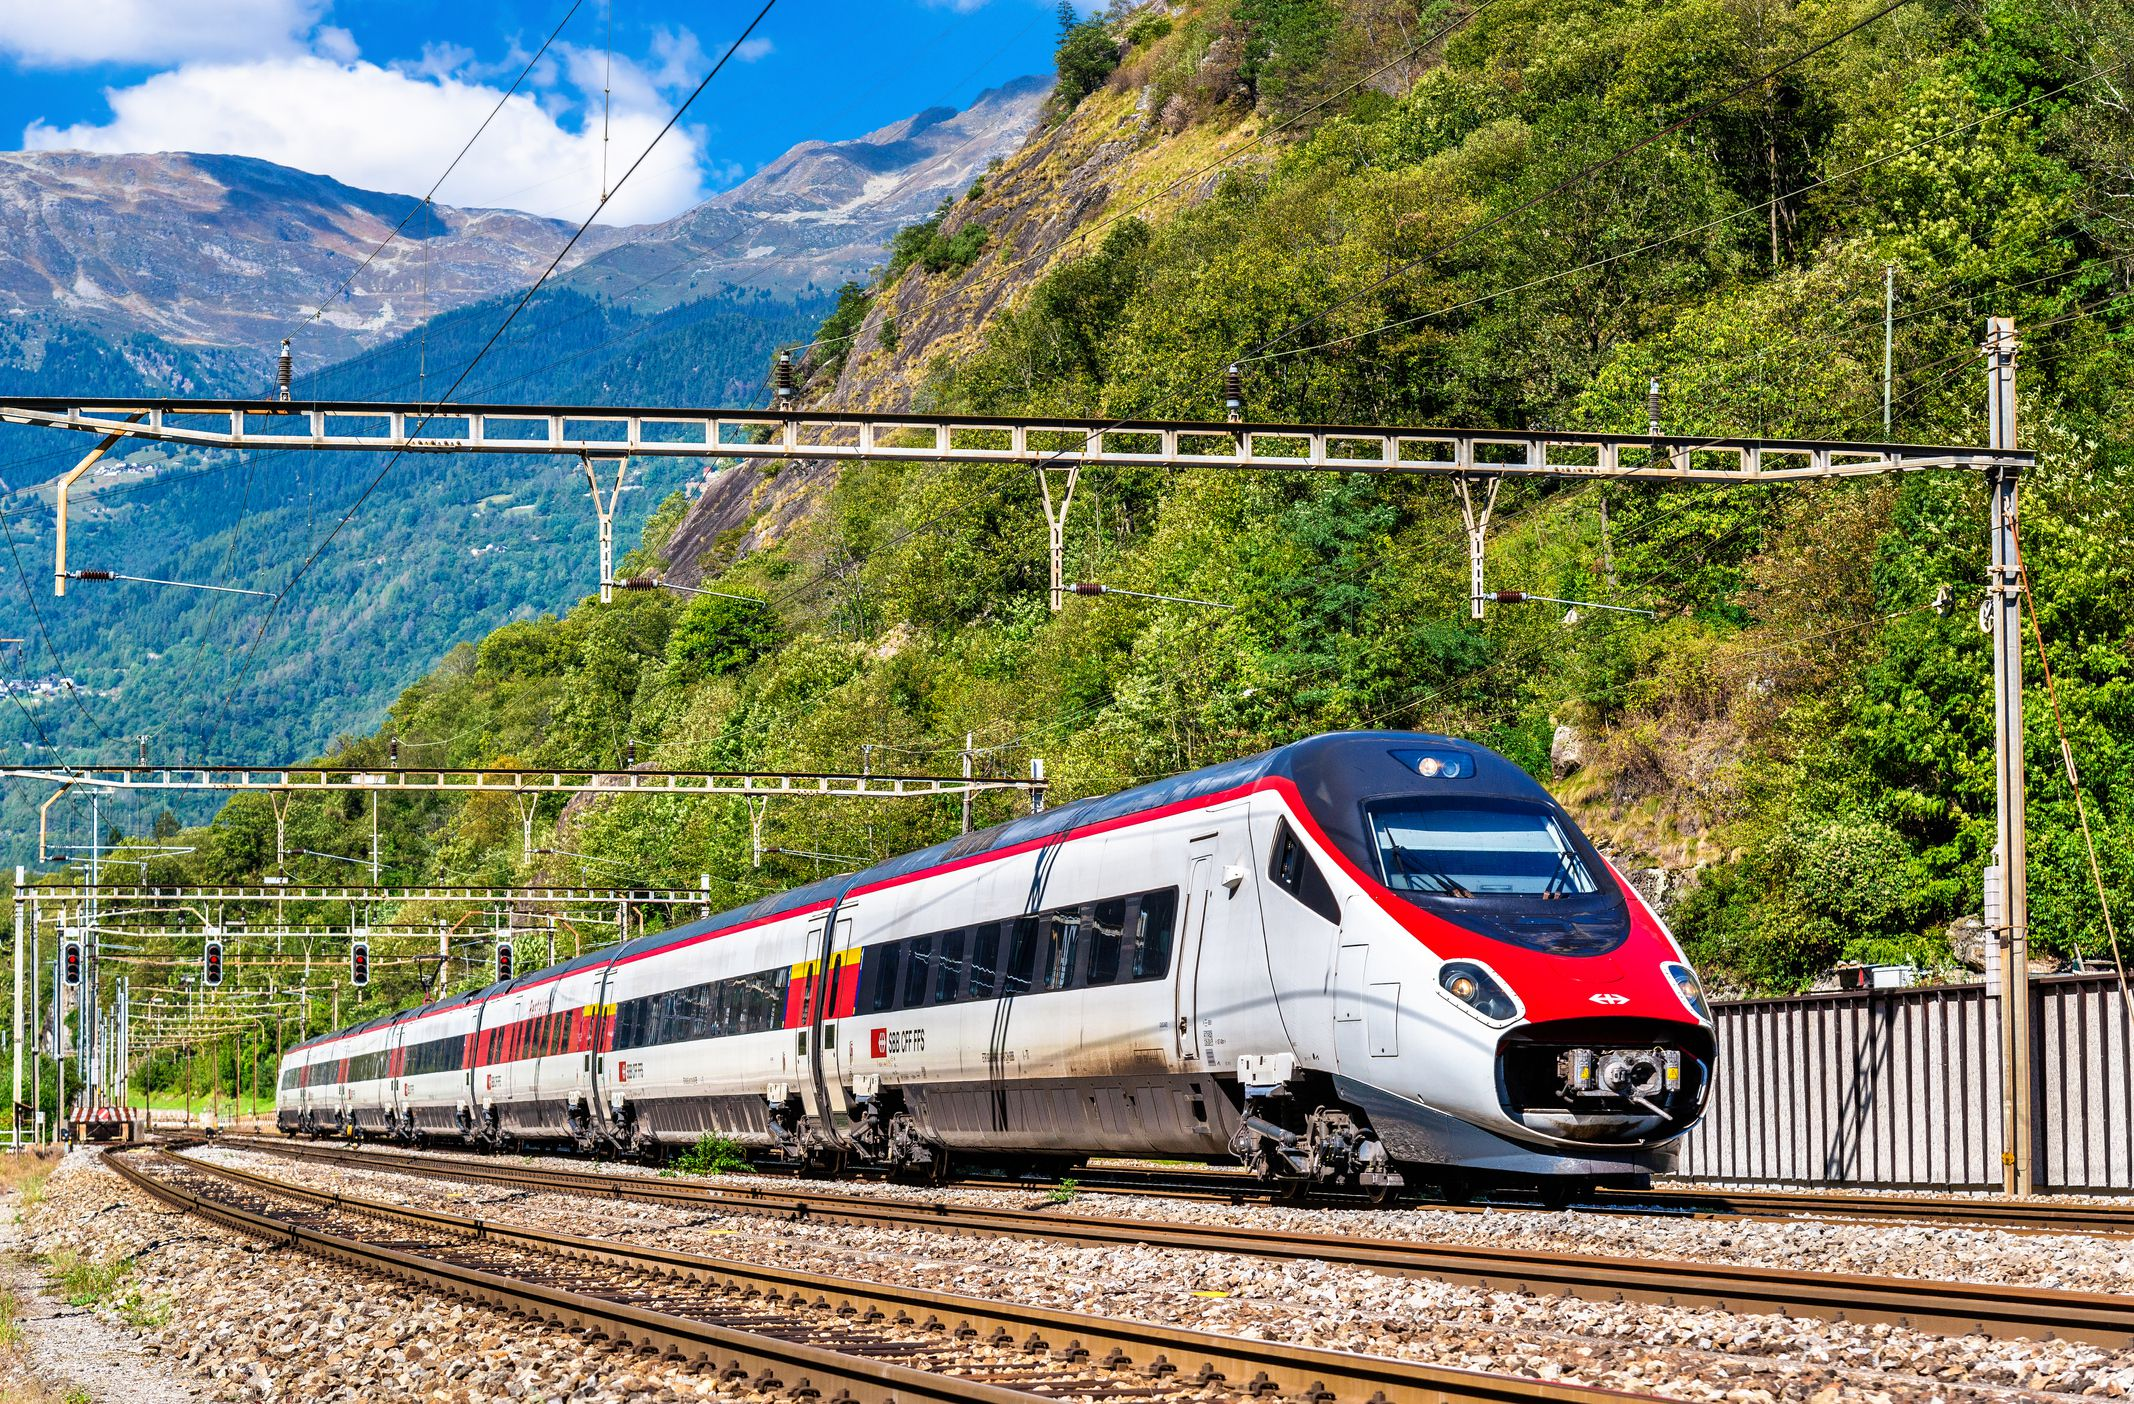 Taking the Train Between Italy and Switzerland